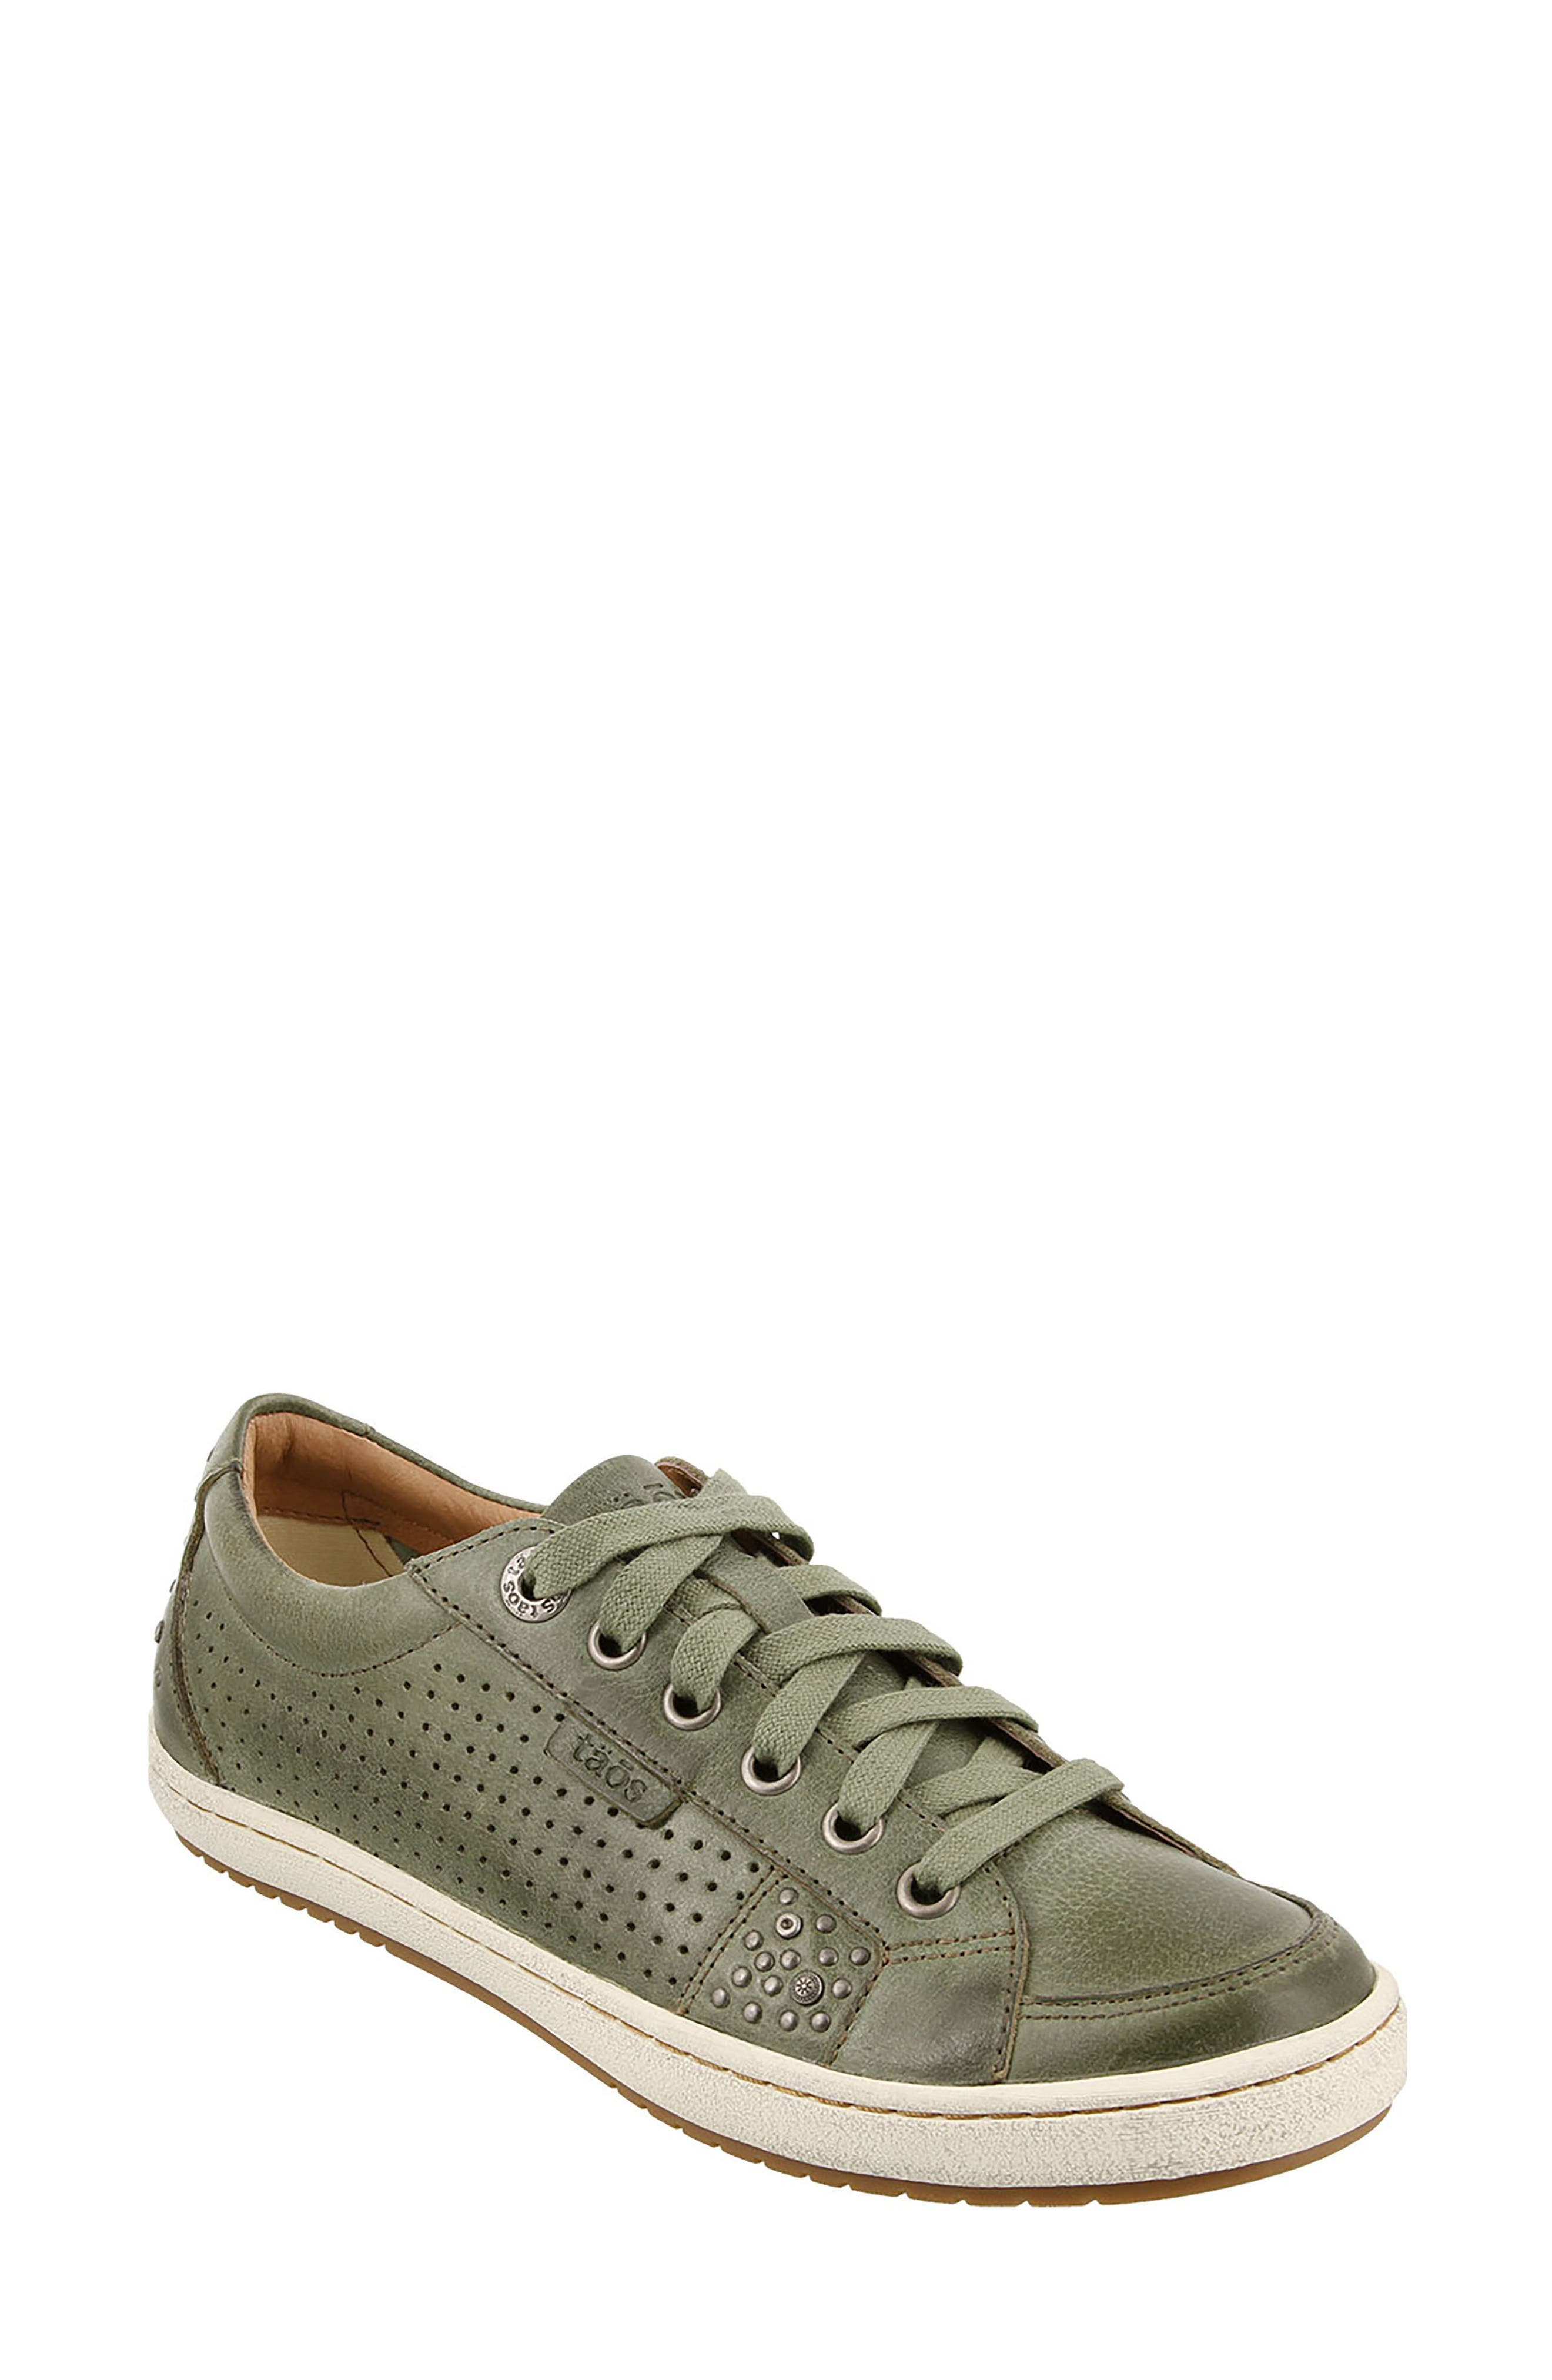 'Freedom' Sneaker,                             Main thumbnail 1, color,                             Sage Leather